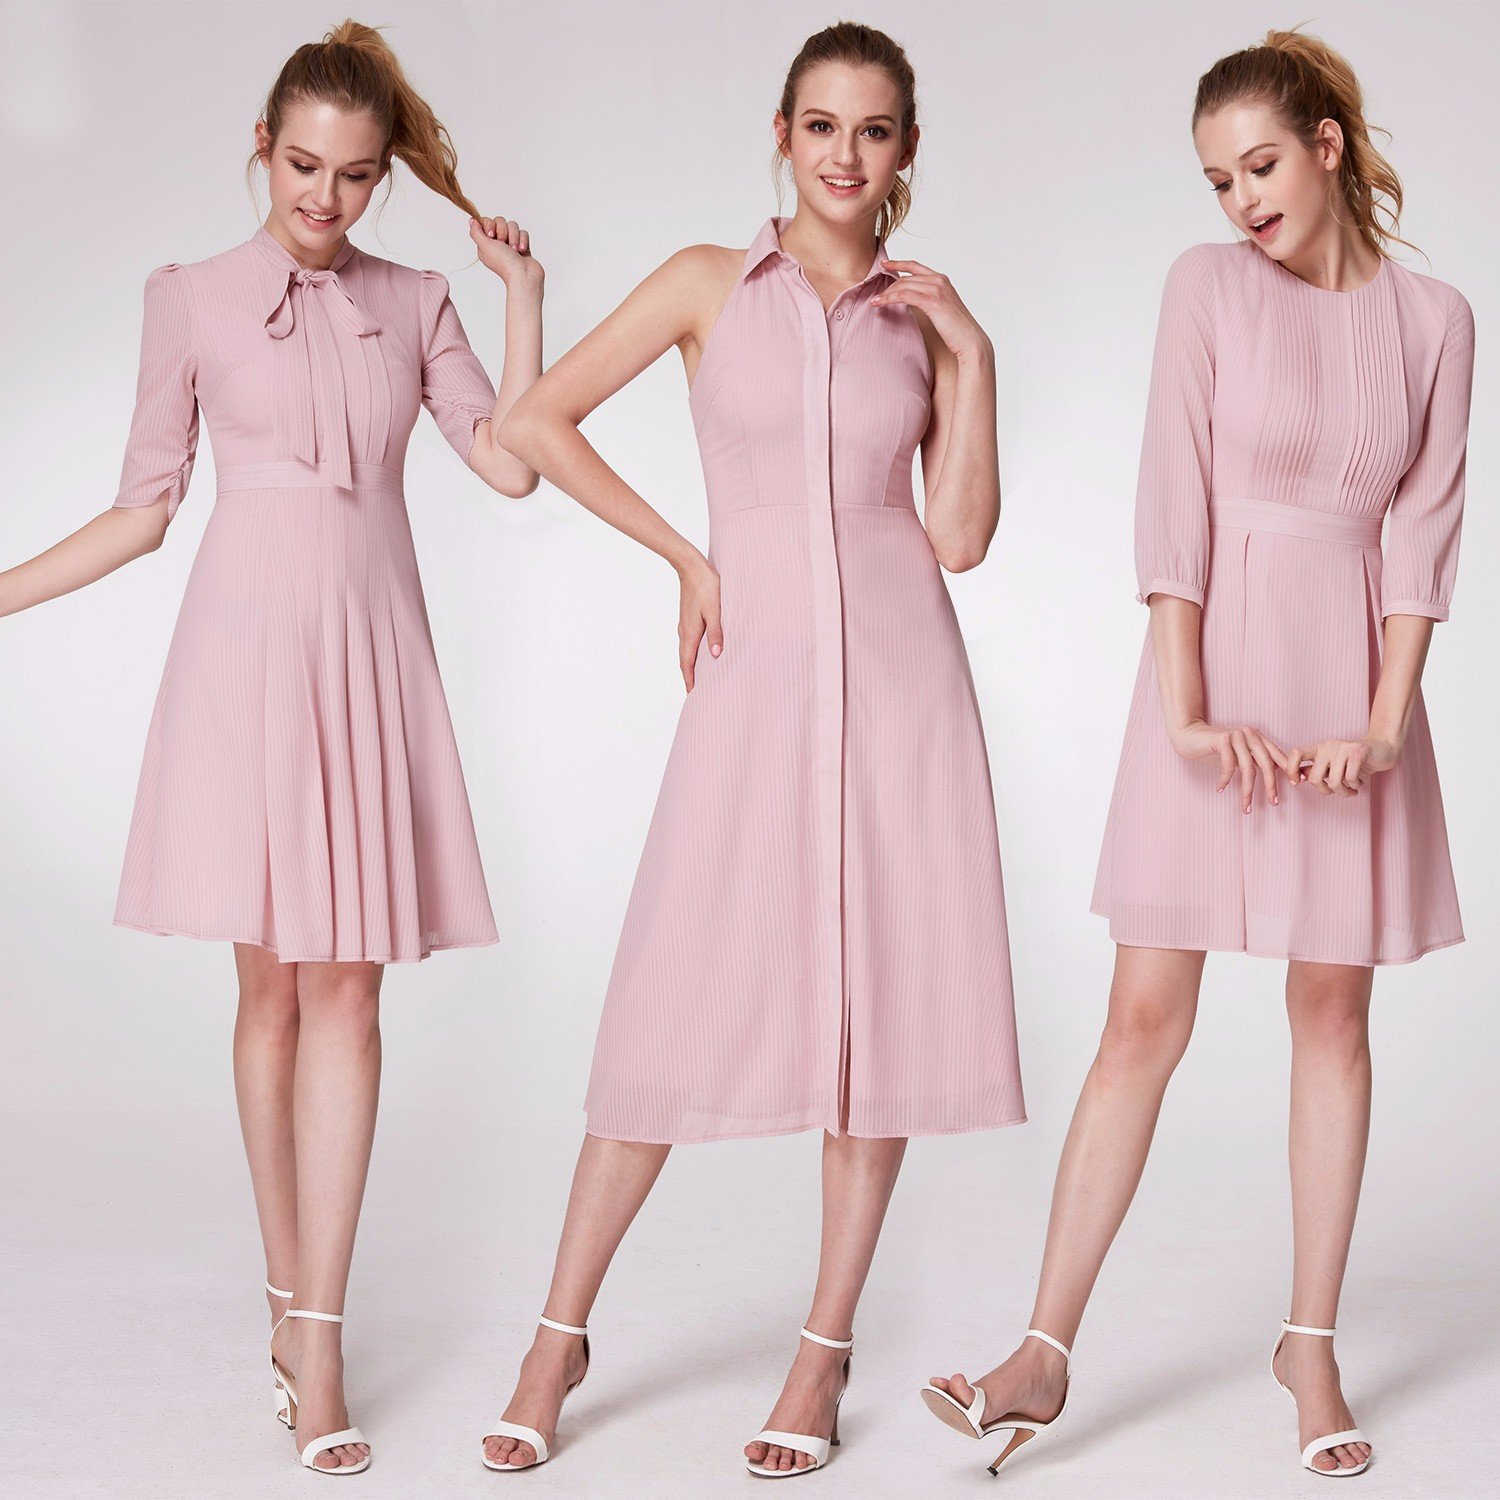 db76a391e5a Alisa Pan 1950s Swing Vintage Party Cocktail Dress Lapel Collar Button  Flared Dress 07196 at Amazon Women s Clothing store